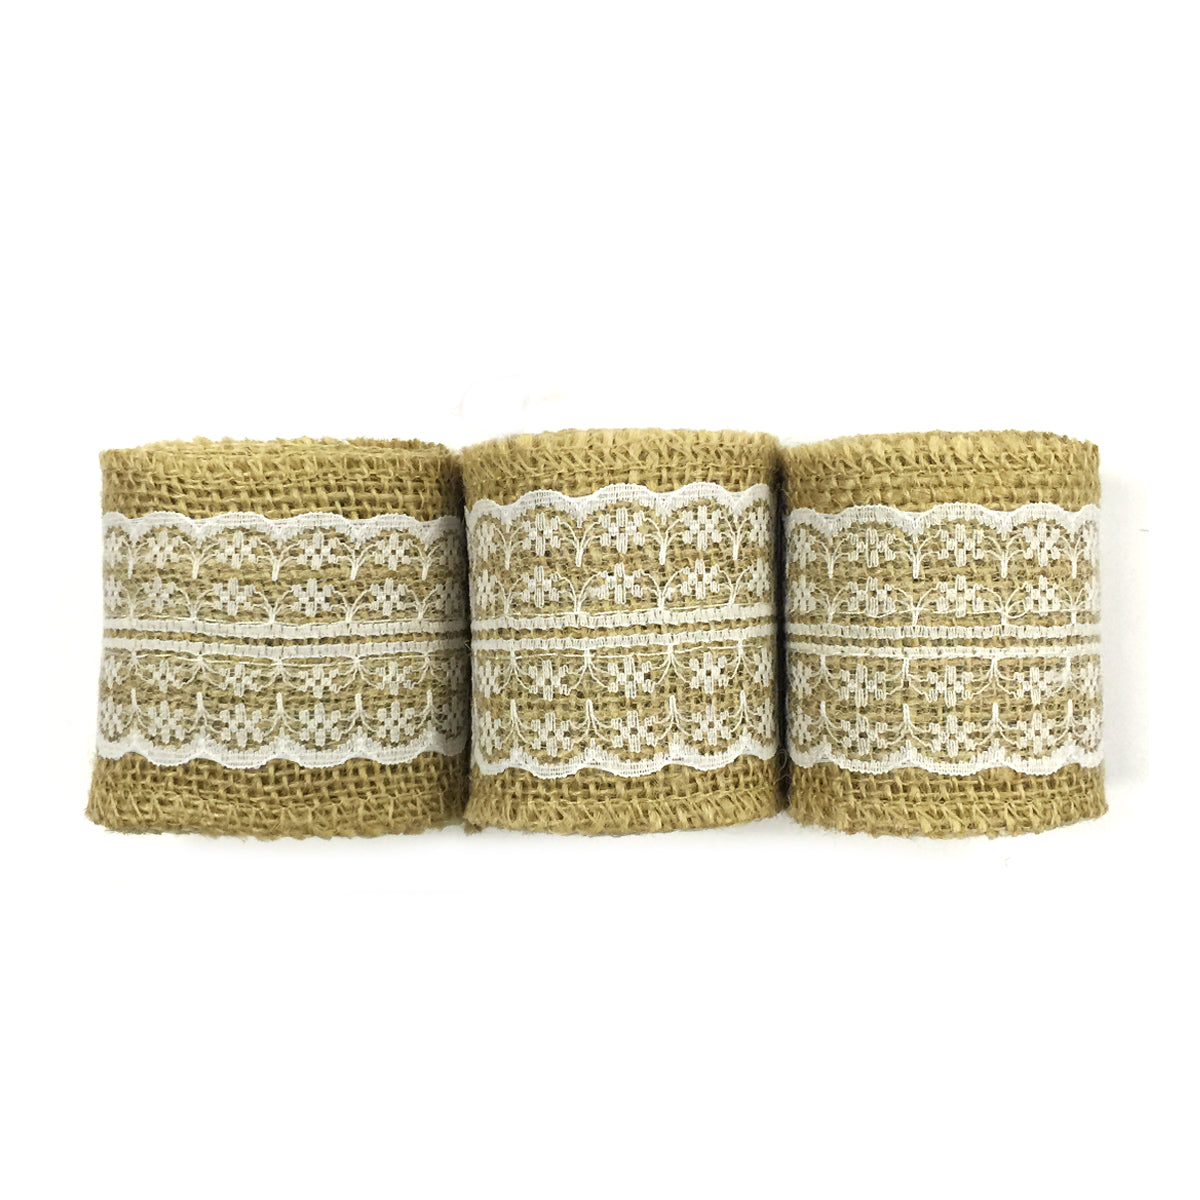 Wrapables Hessian Burlap with Lace Ribbon